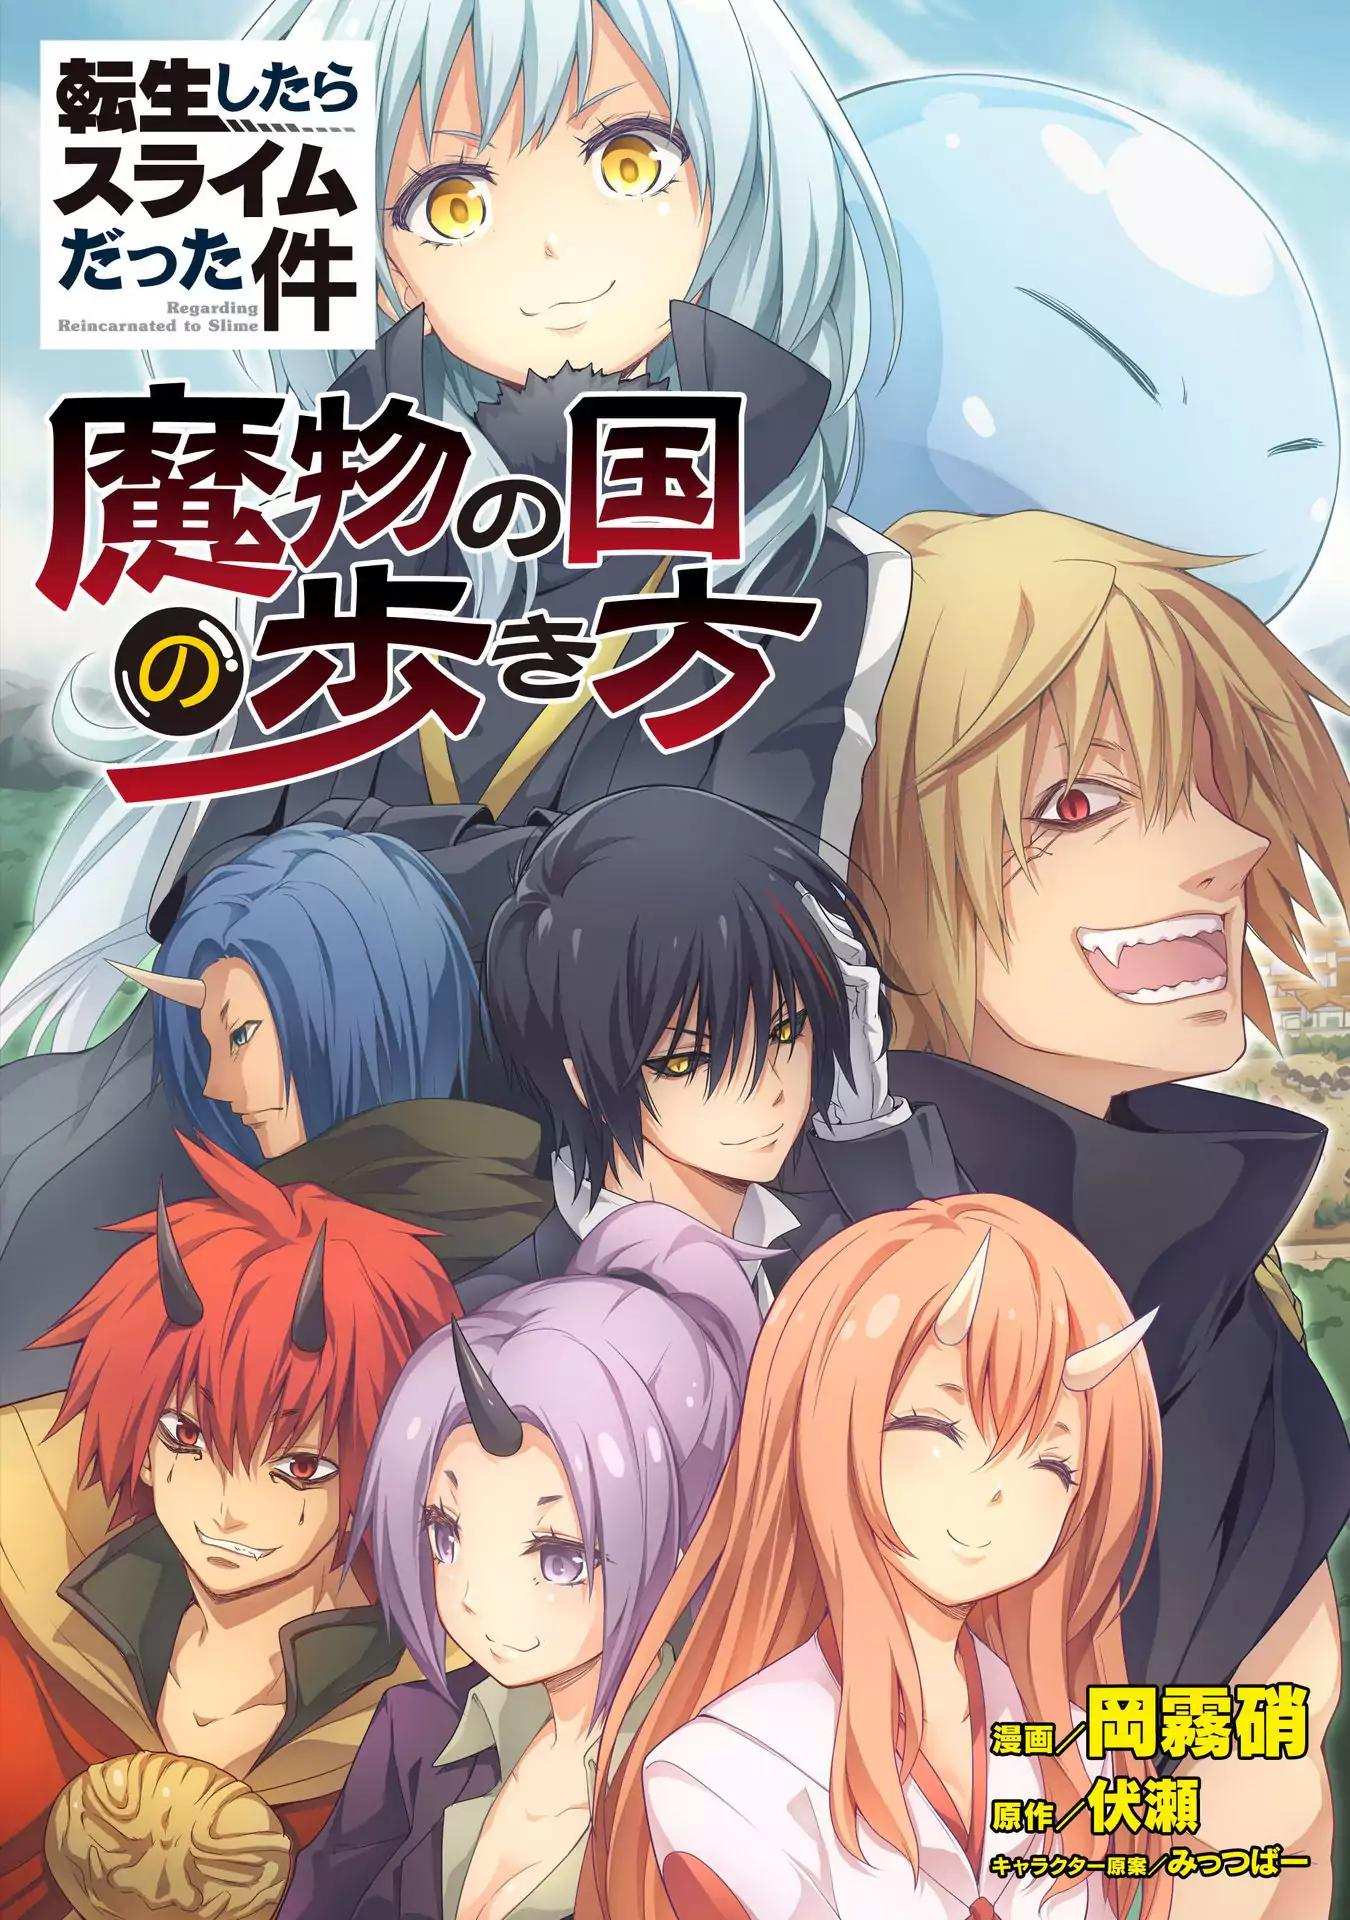 tensei shitara slime datta ken: the ways of strolling in the demon country - chapter 13 - #2